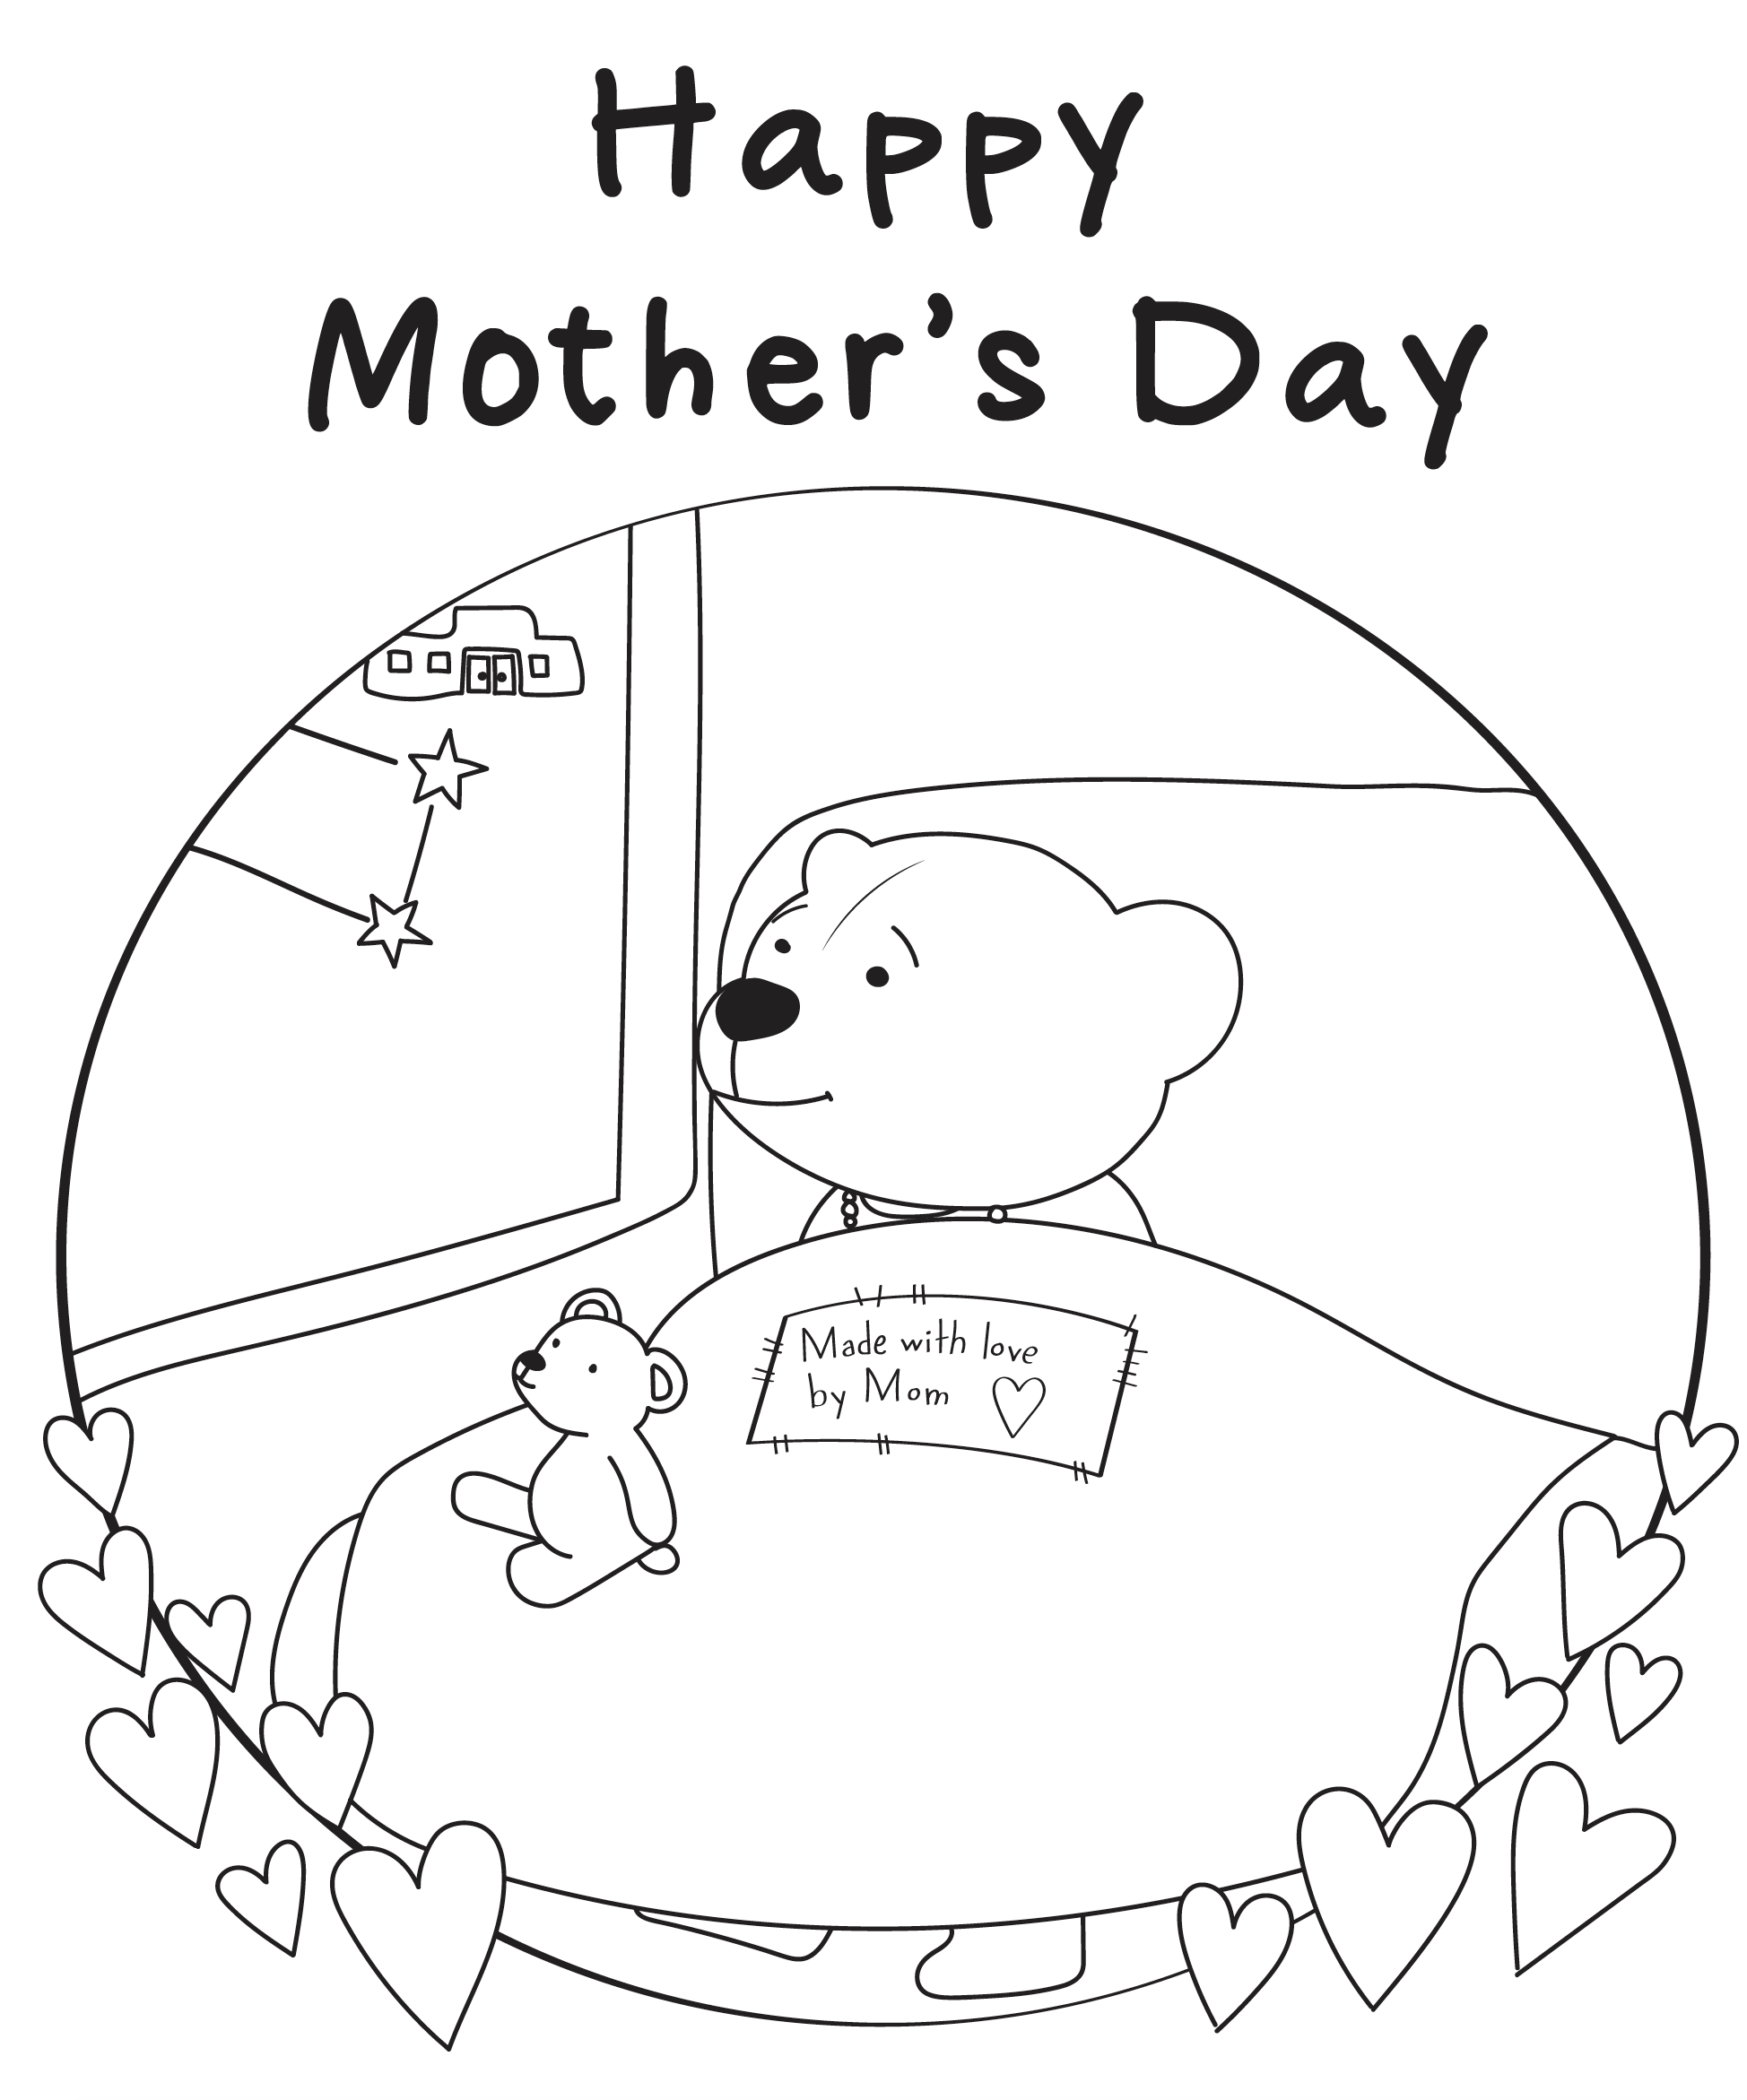 Mother's Day Colouring Sheet